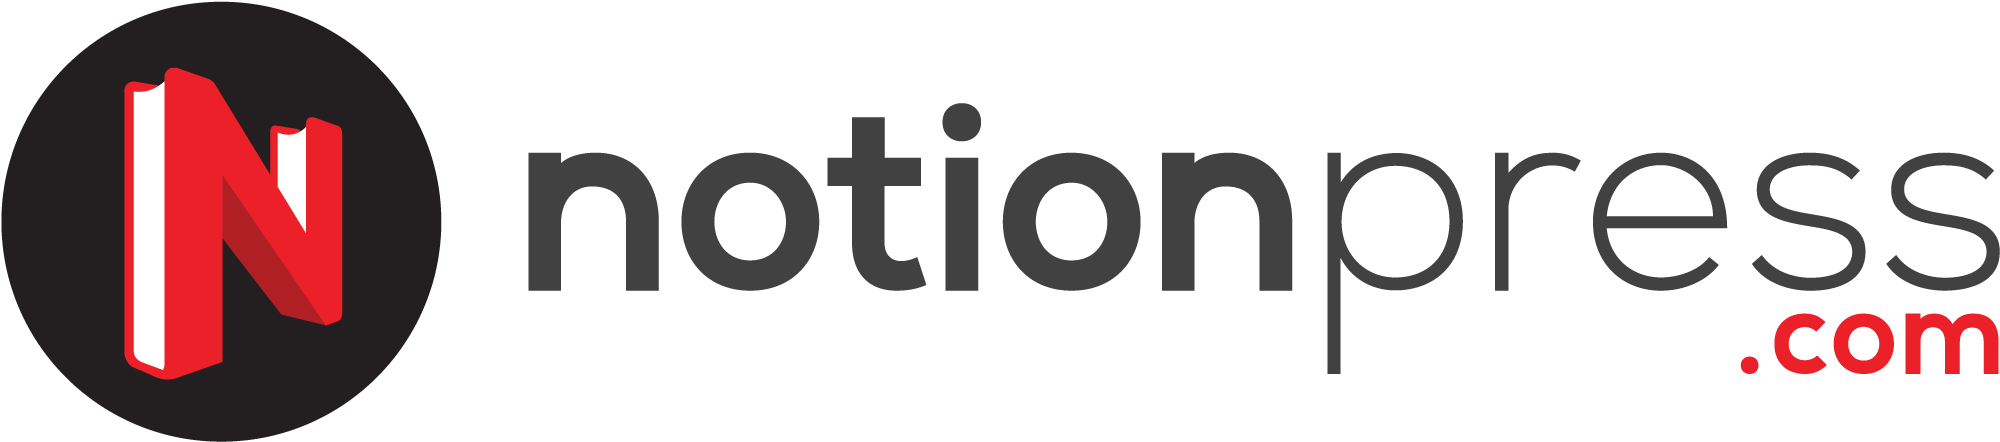 notionpress Logo